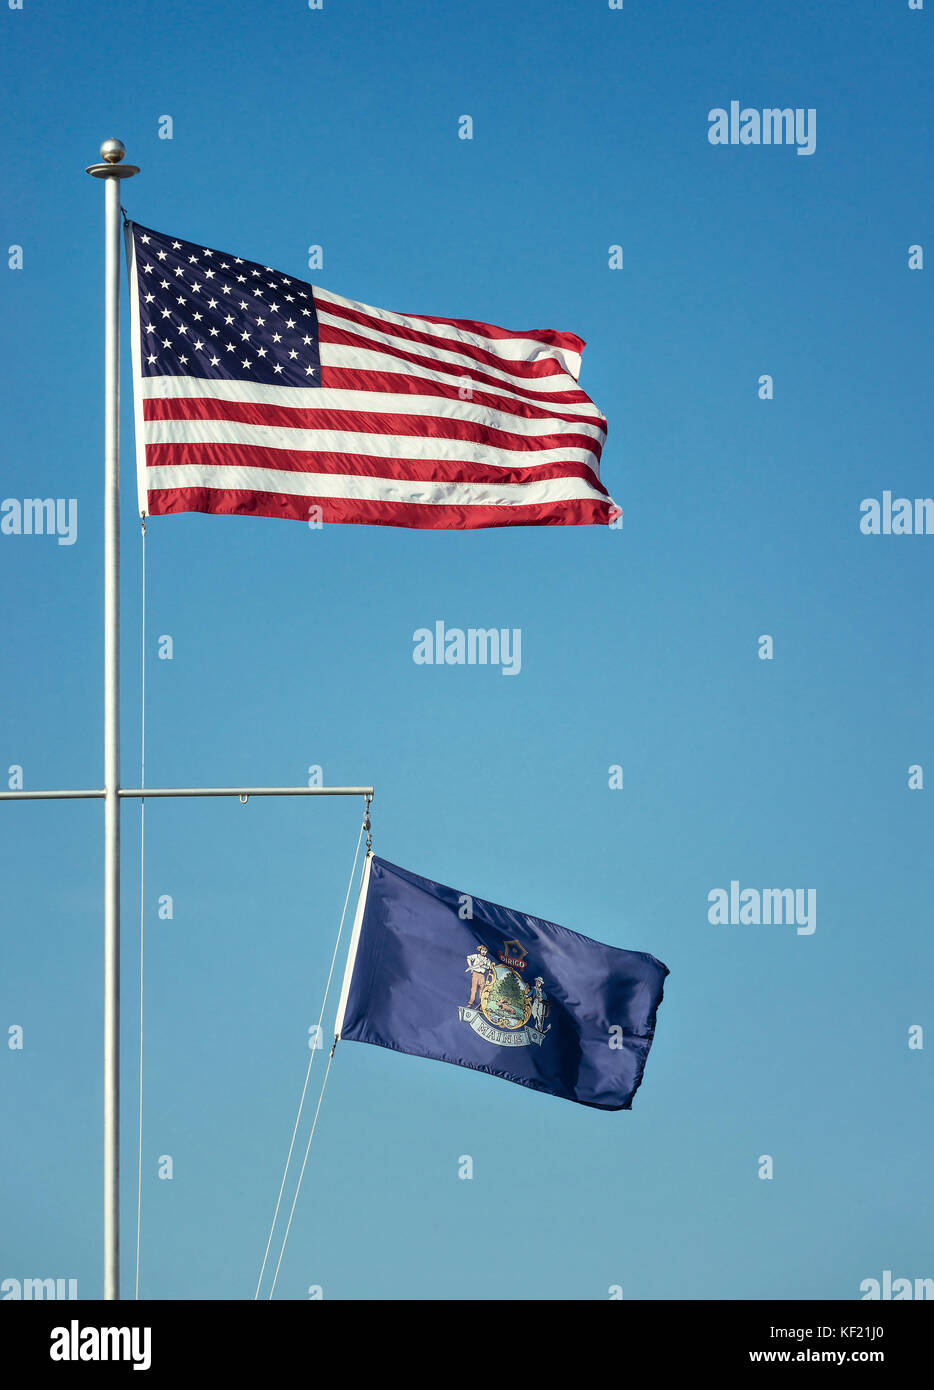 American flag and the State flag of Maine waving in the wind on a flagpole. Blue sky background with copy space. - Stock Image